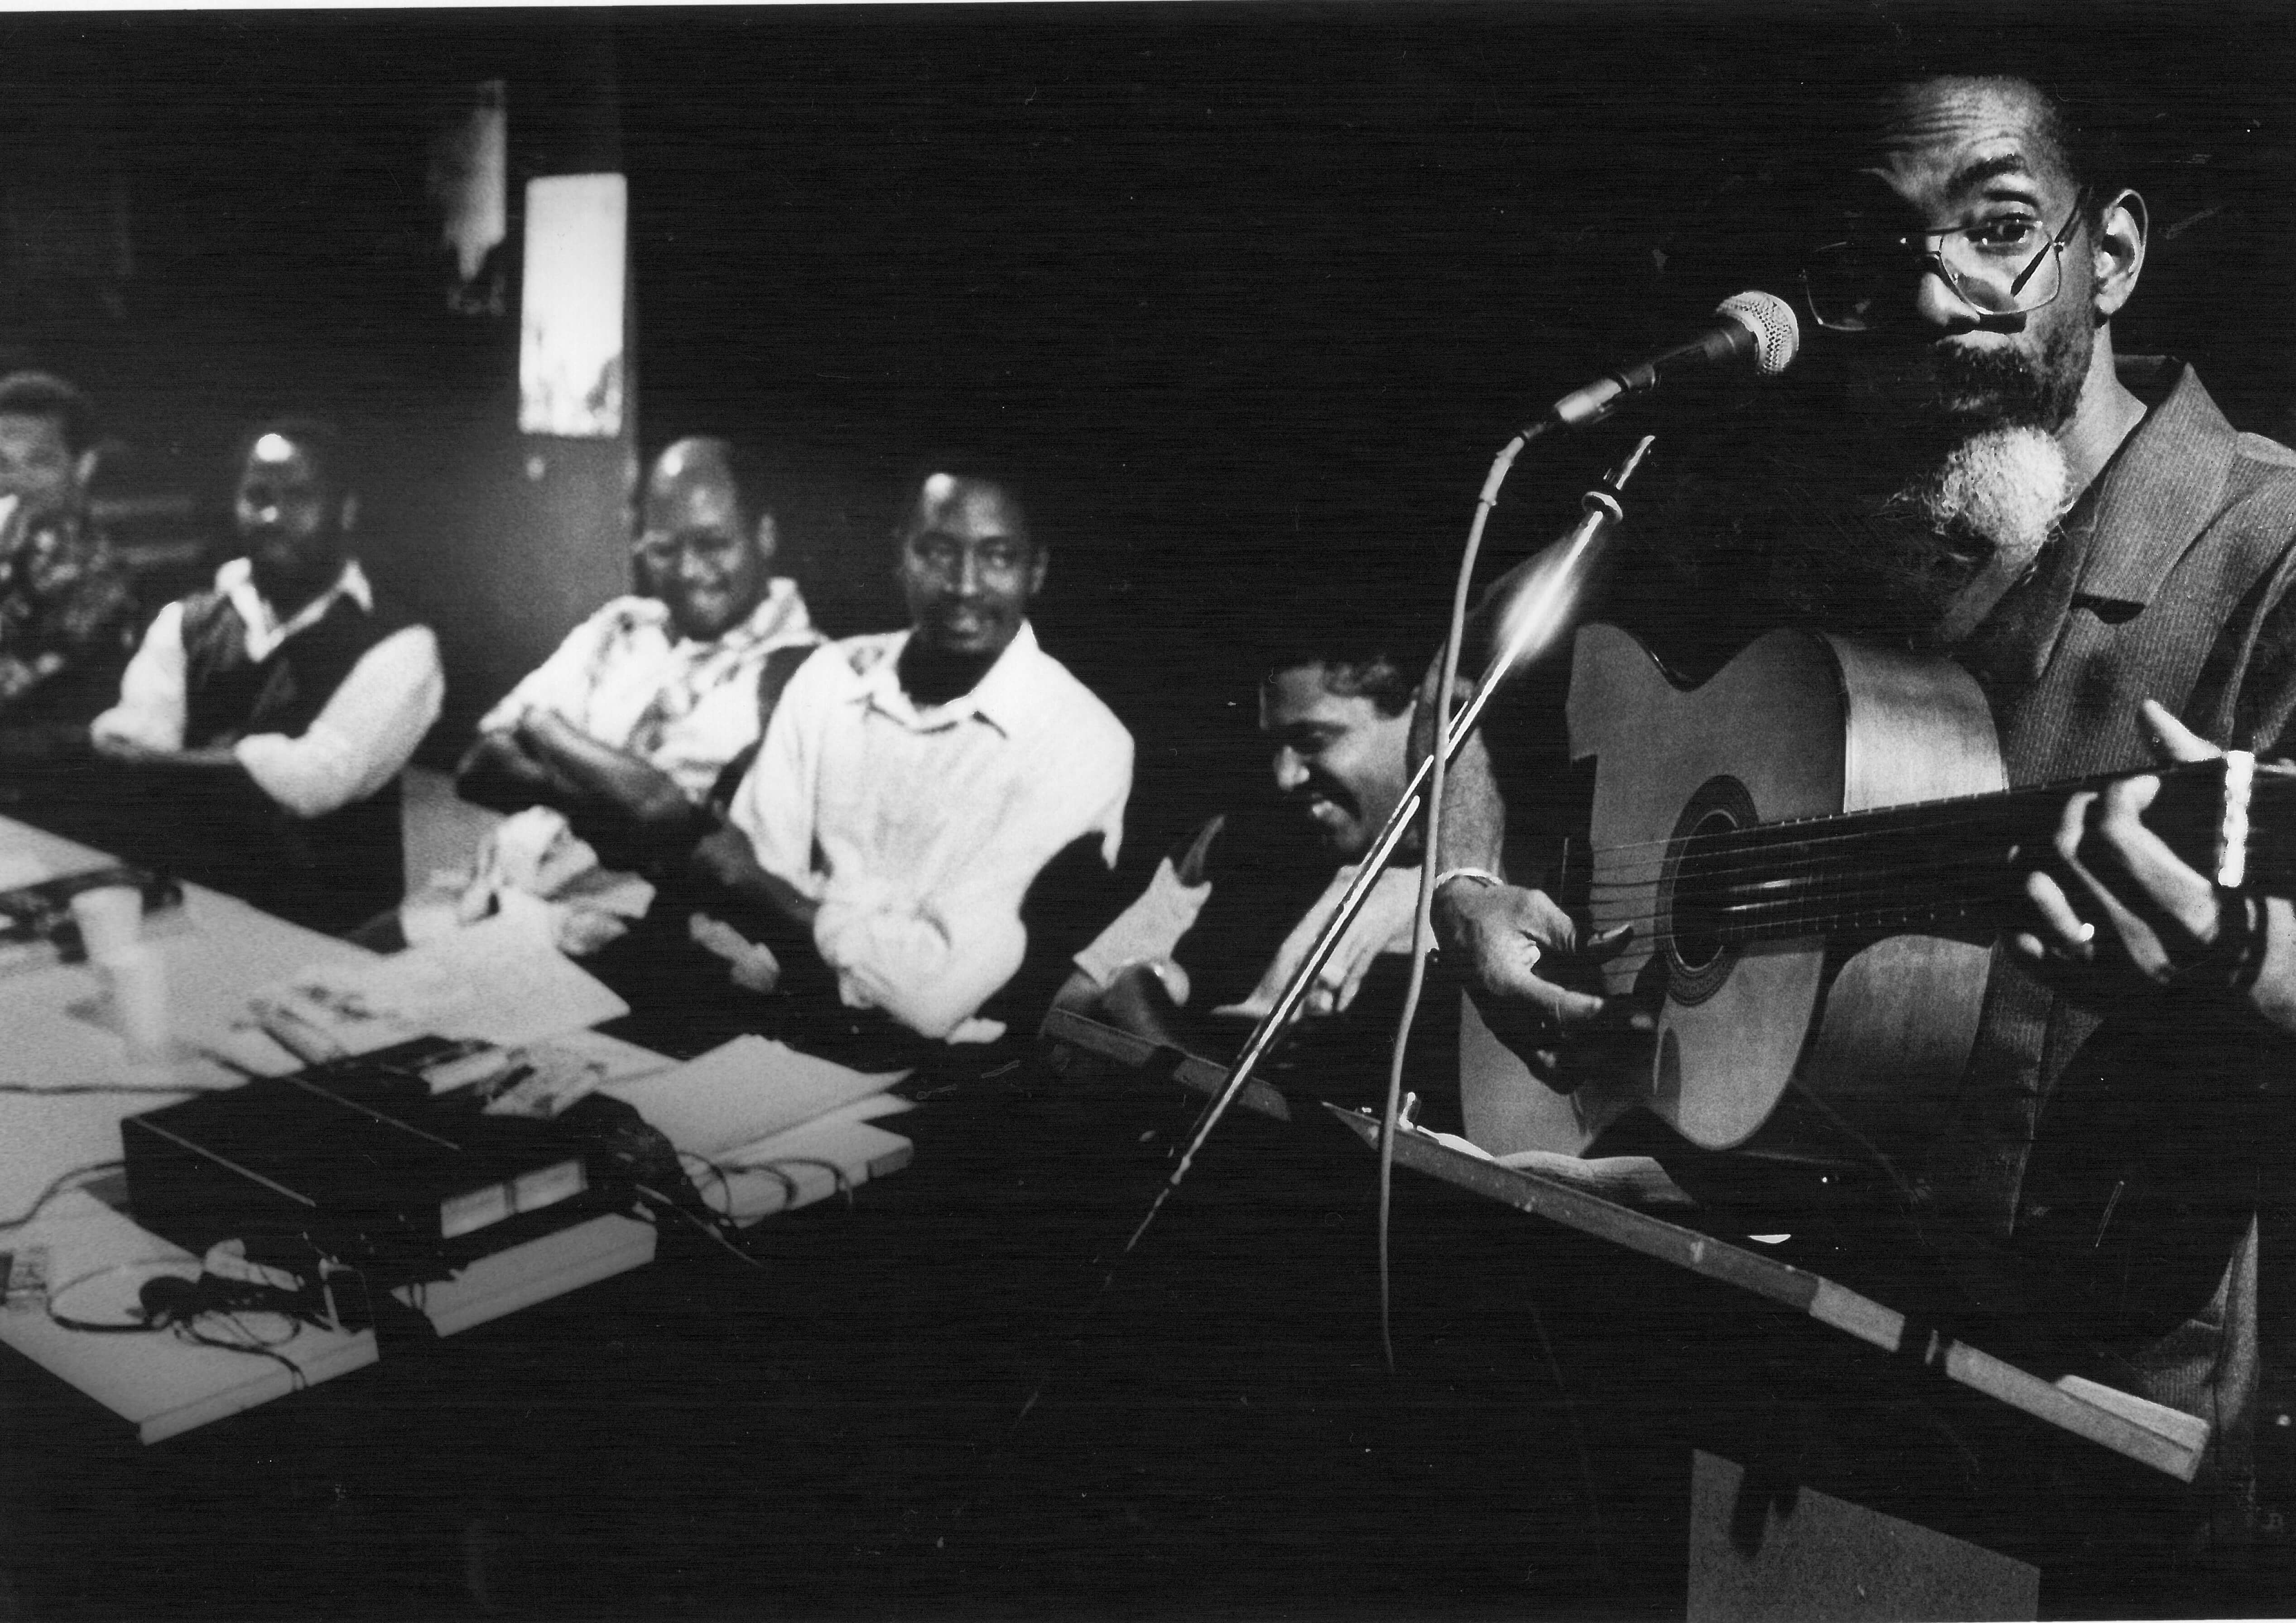 Chalkdust is seen in close-up on the right of the picture, singing and playing a guitar. To the left, 5 individuals can be seen seated at a table, including Michael La Rose, Felix Edinborough, Teddy Belgrave and Gus John.